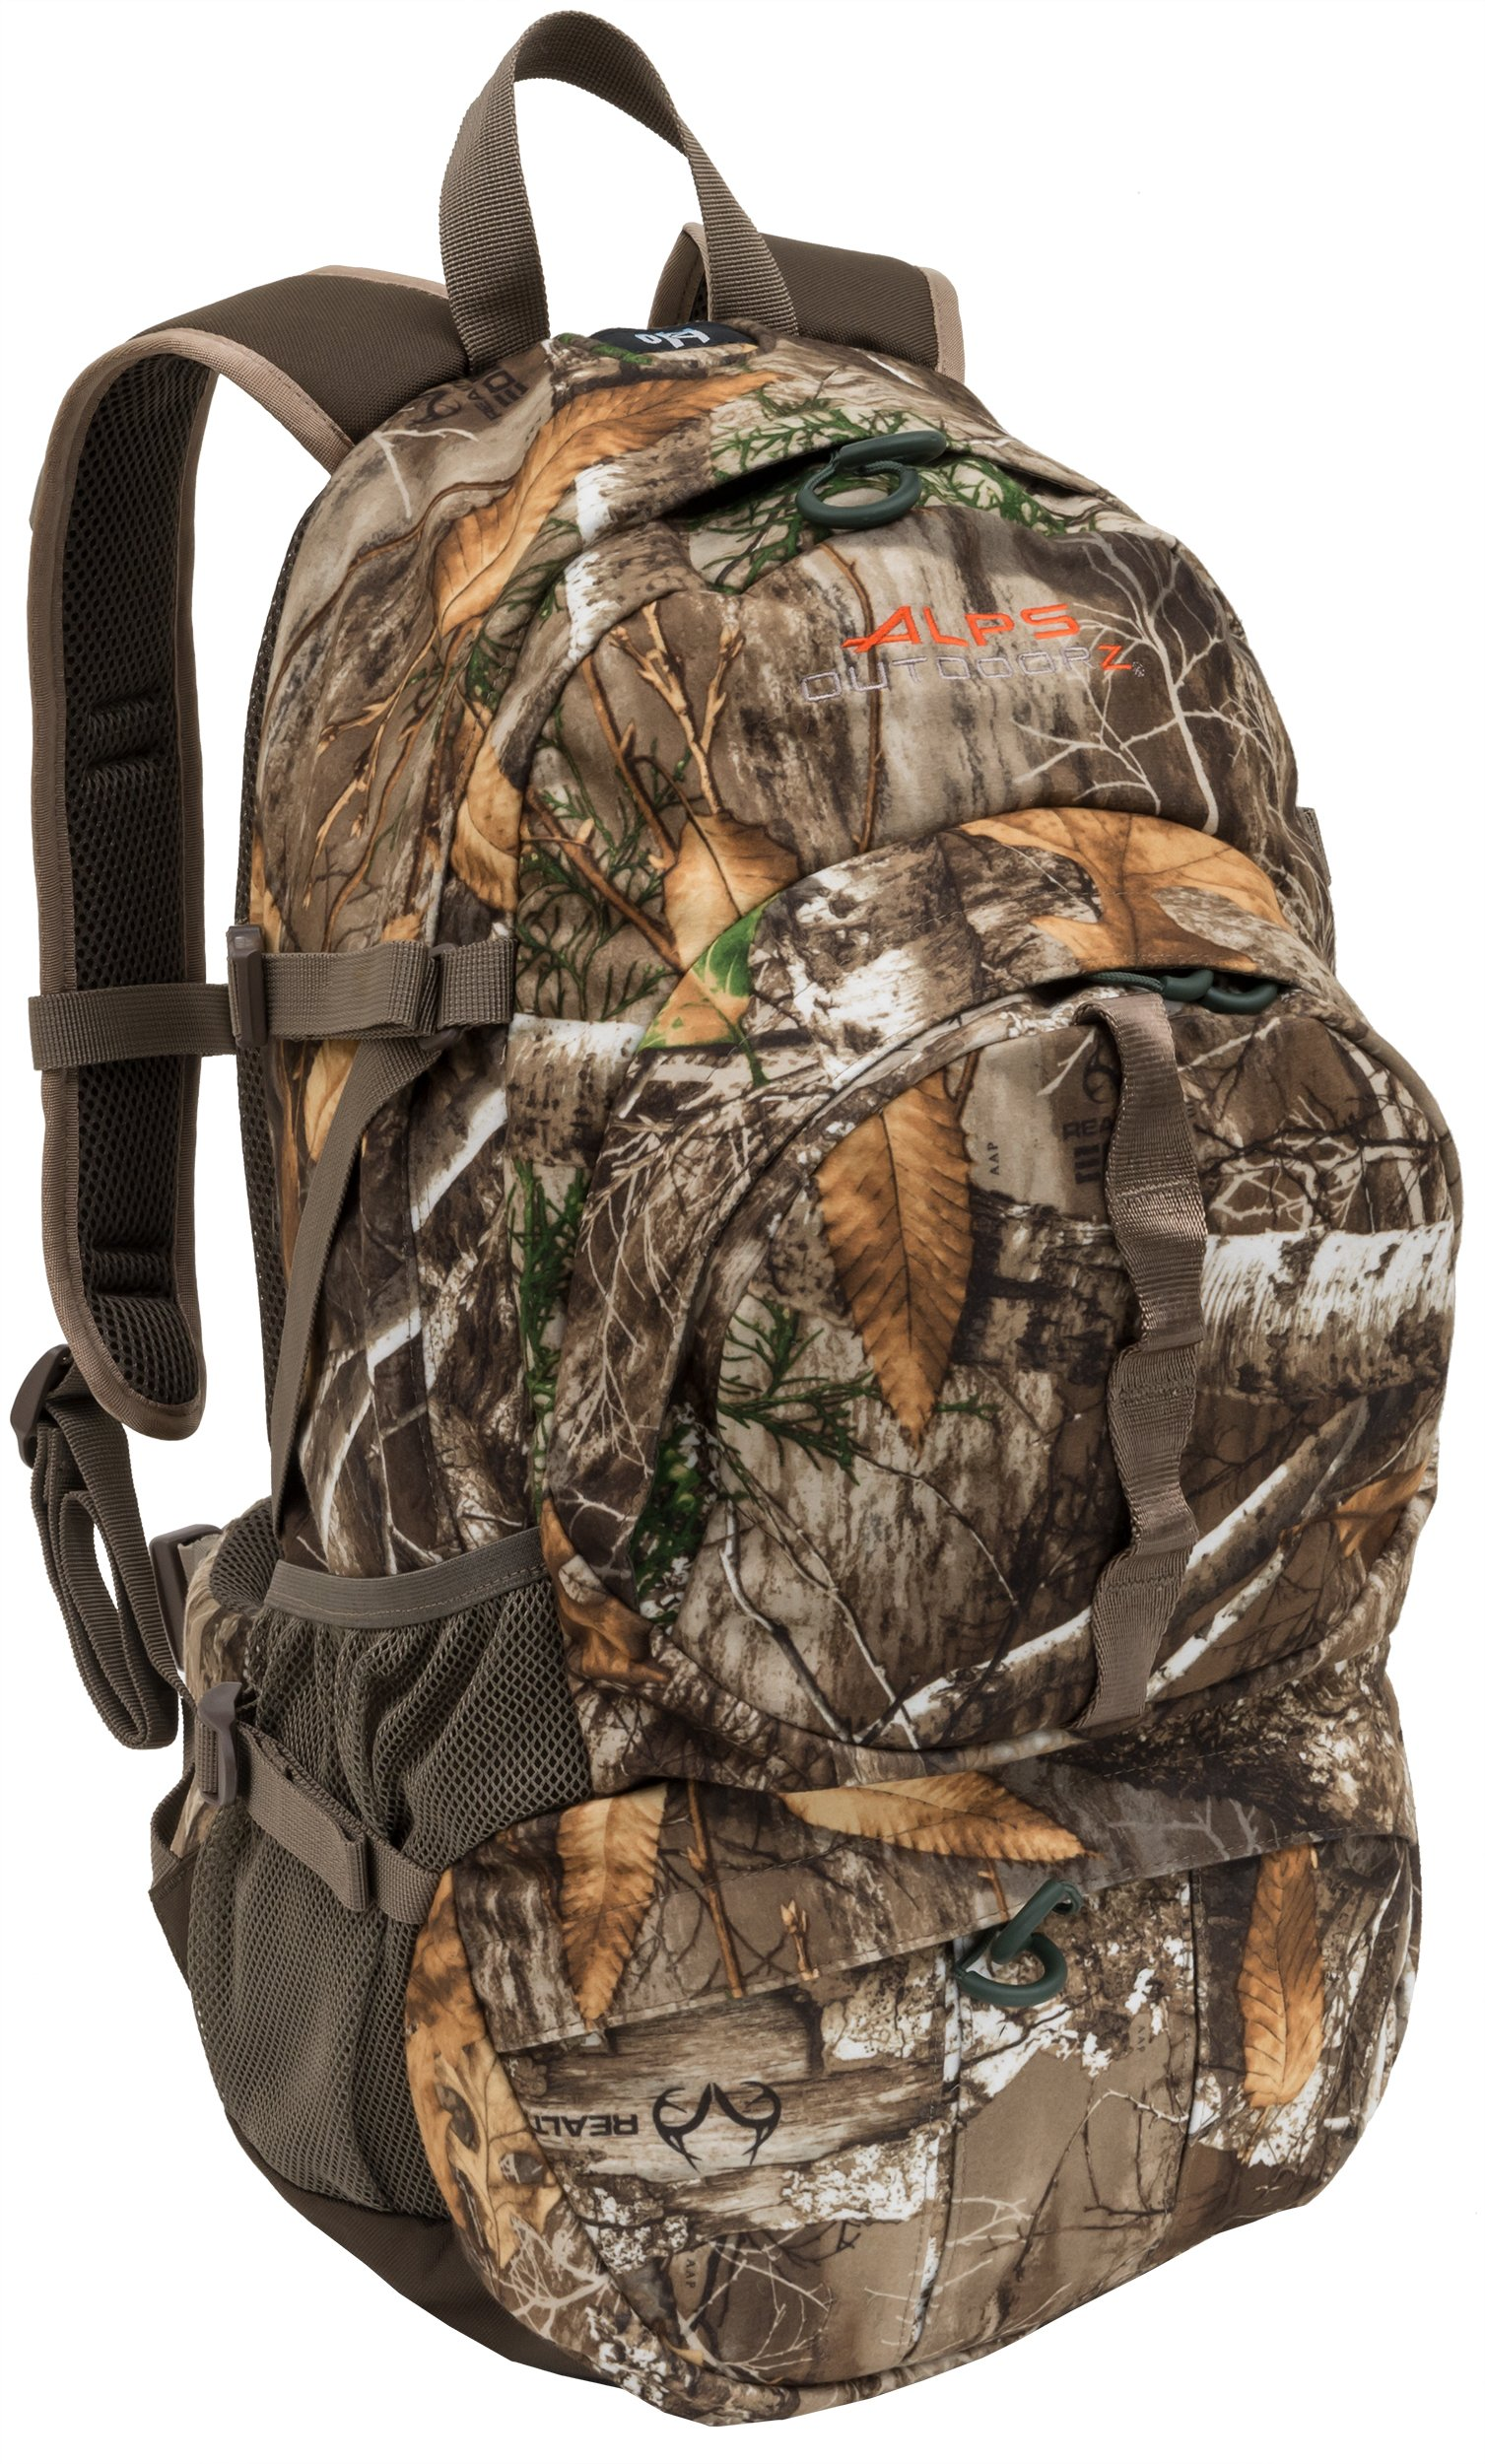 ALPS OutdoorZ Dark Timber Hunting Day Pack, Realtree Edge by ALPS OutdoorZ